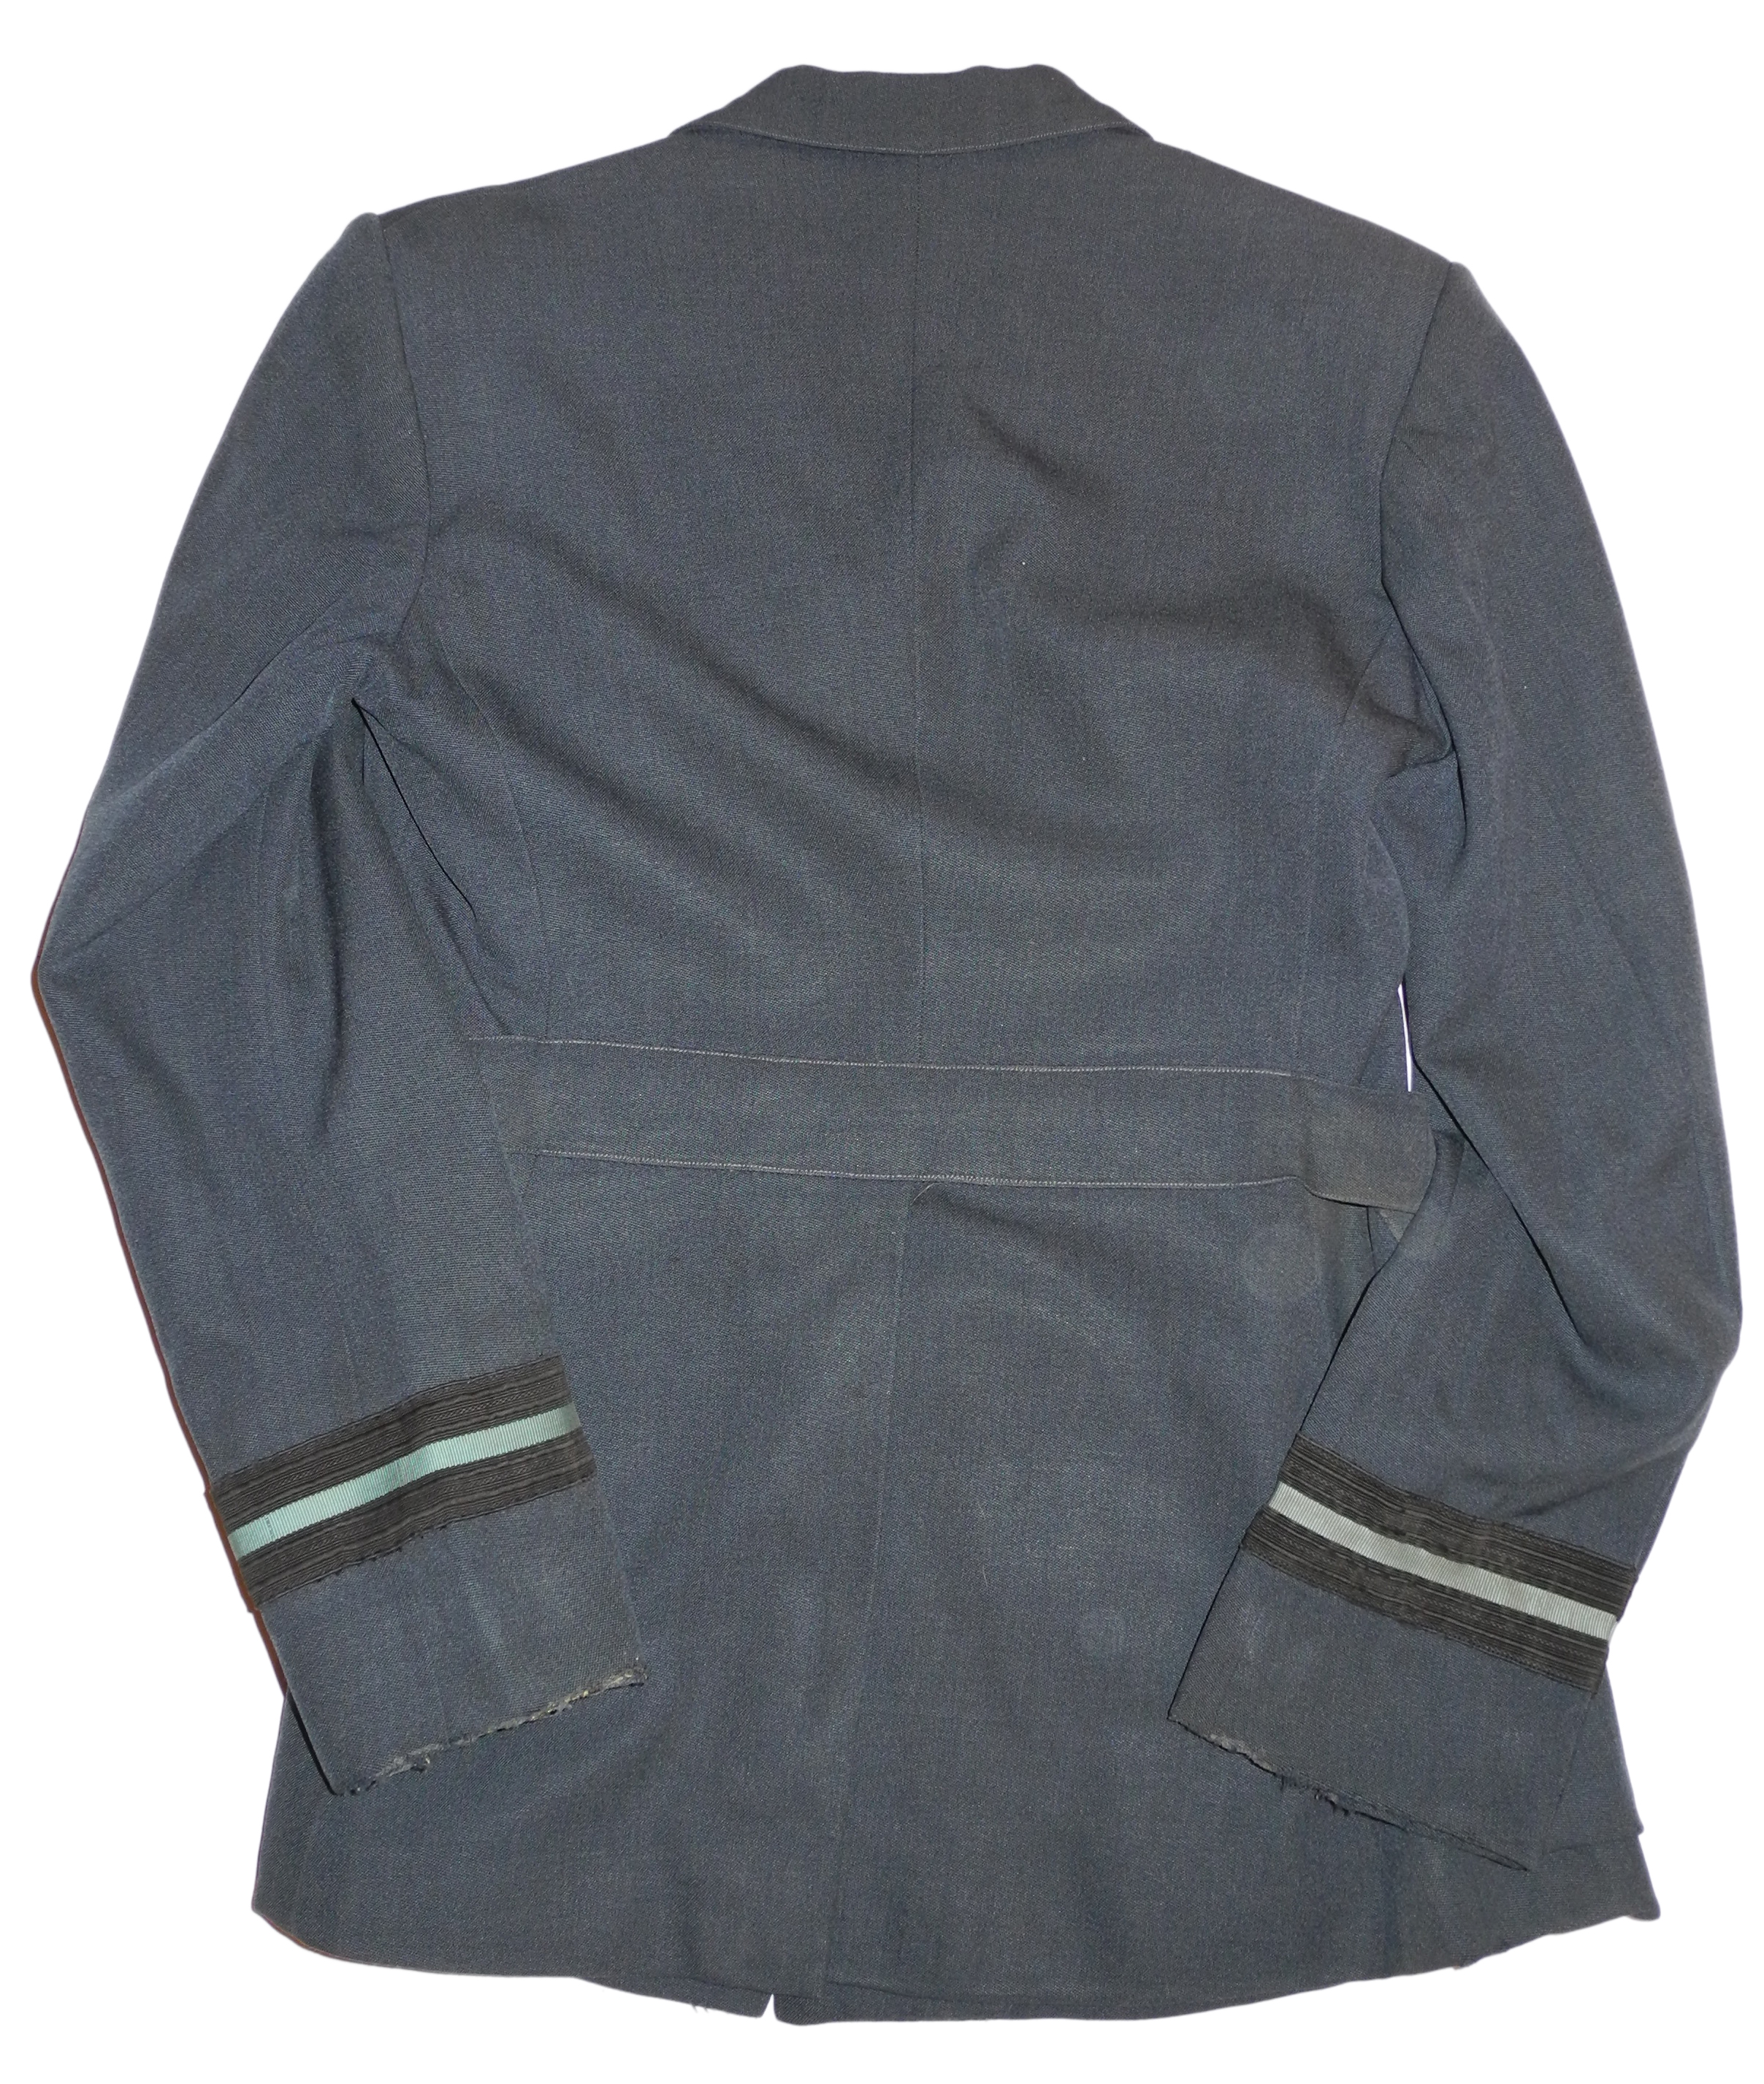 RAF Air Commodore's uniform